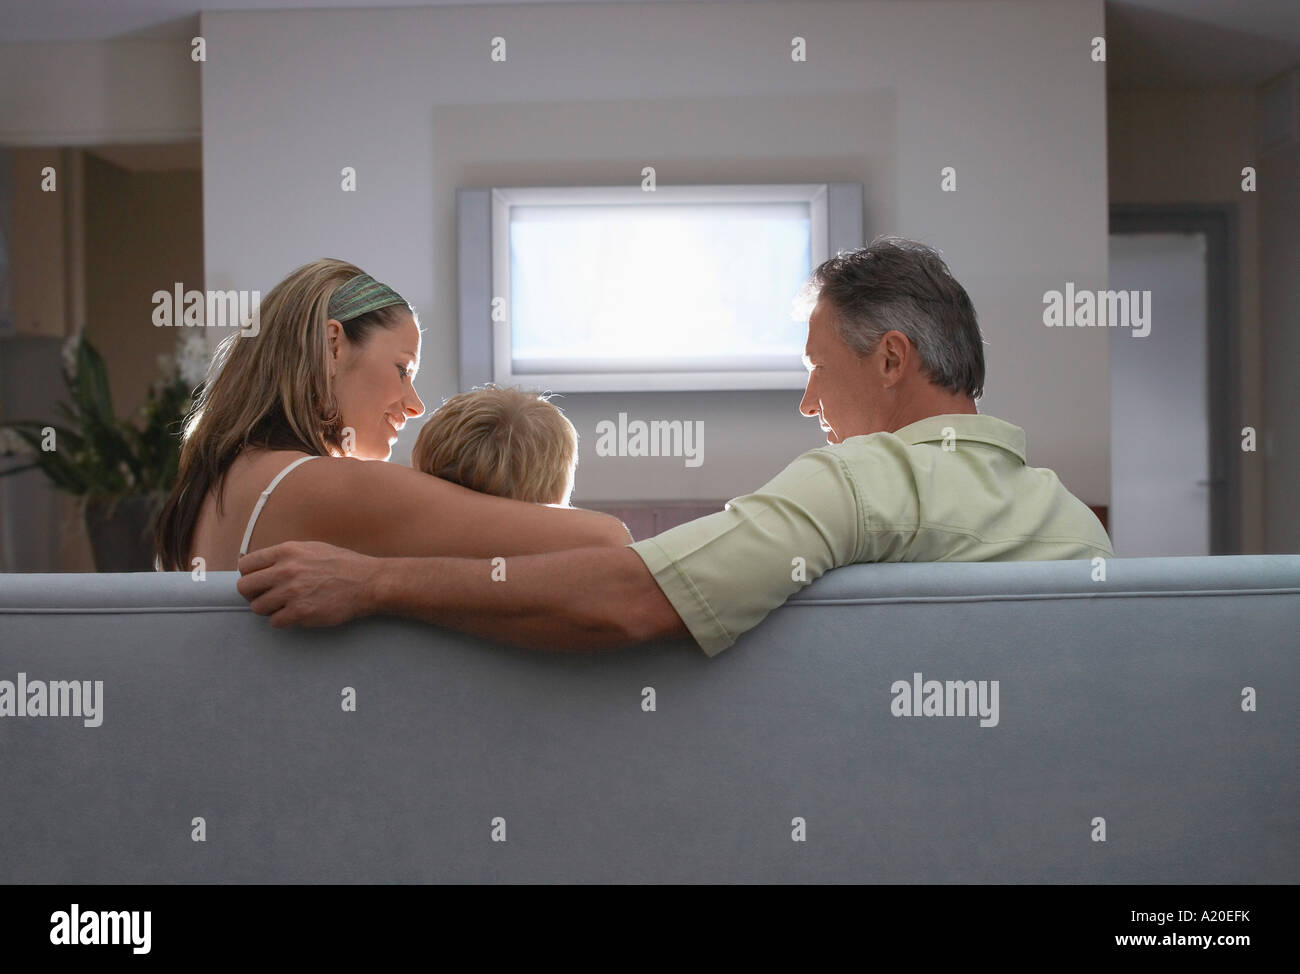 Parents sitting on sofa, arm around son, Watching TV, back view - Stock Image